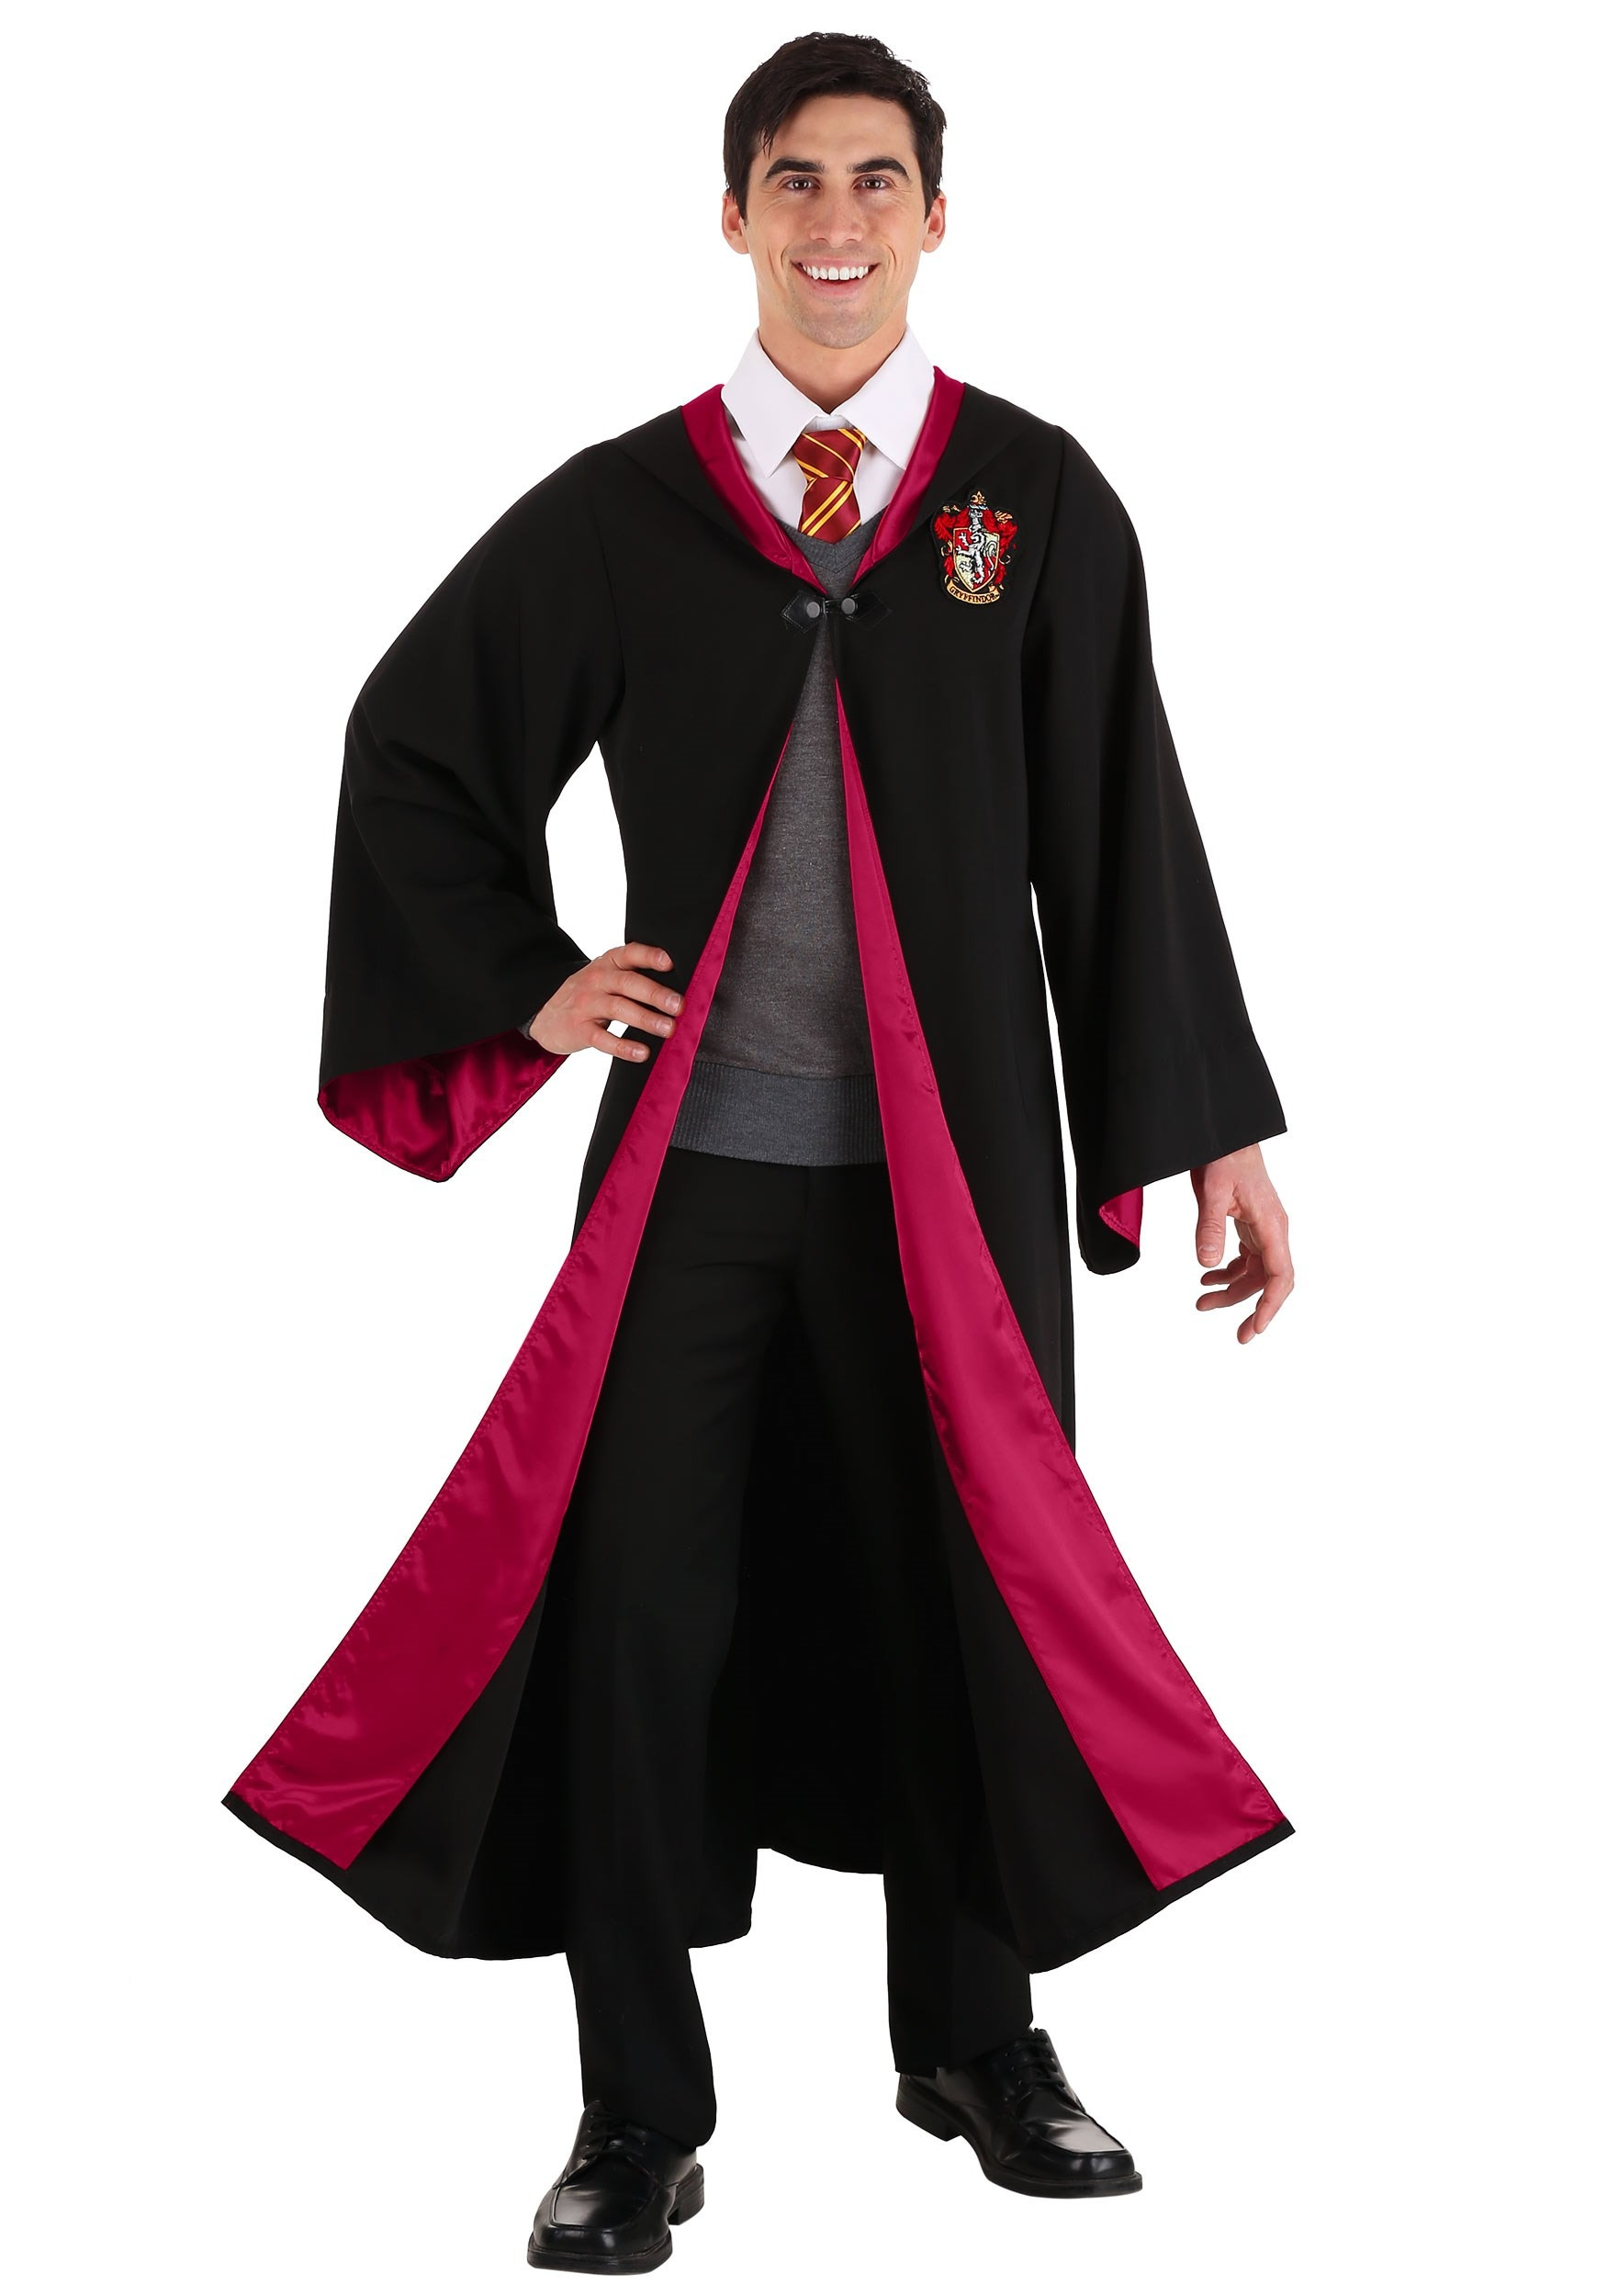 Deluxe Adult's Harry Potter Costume